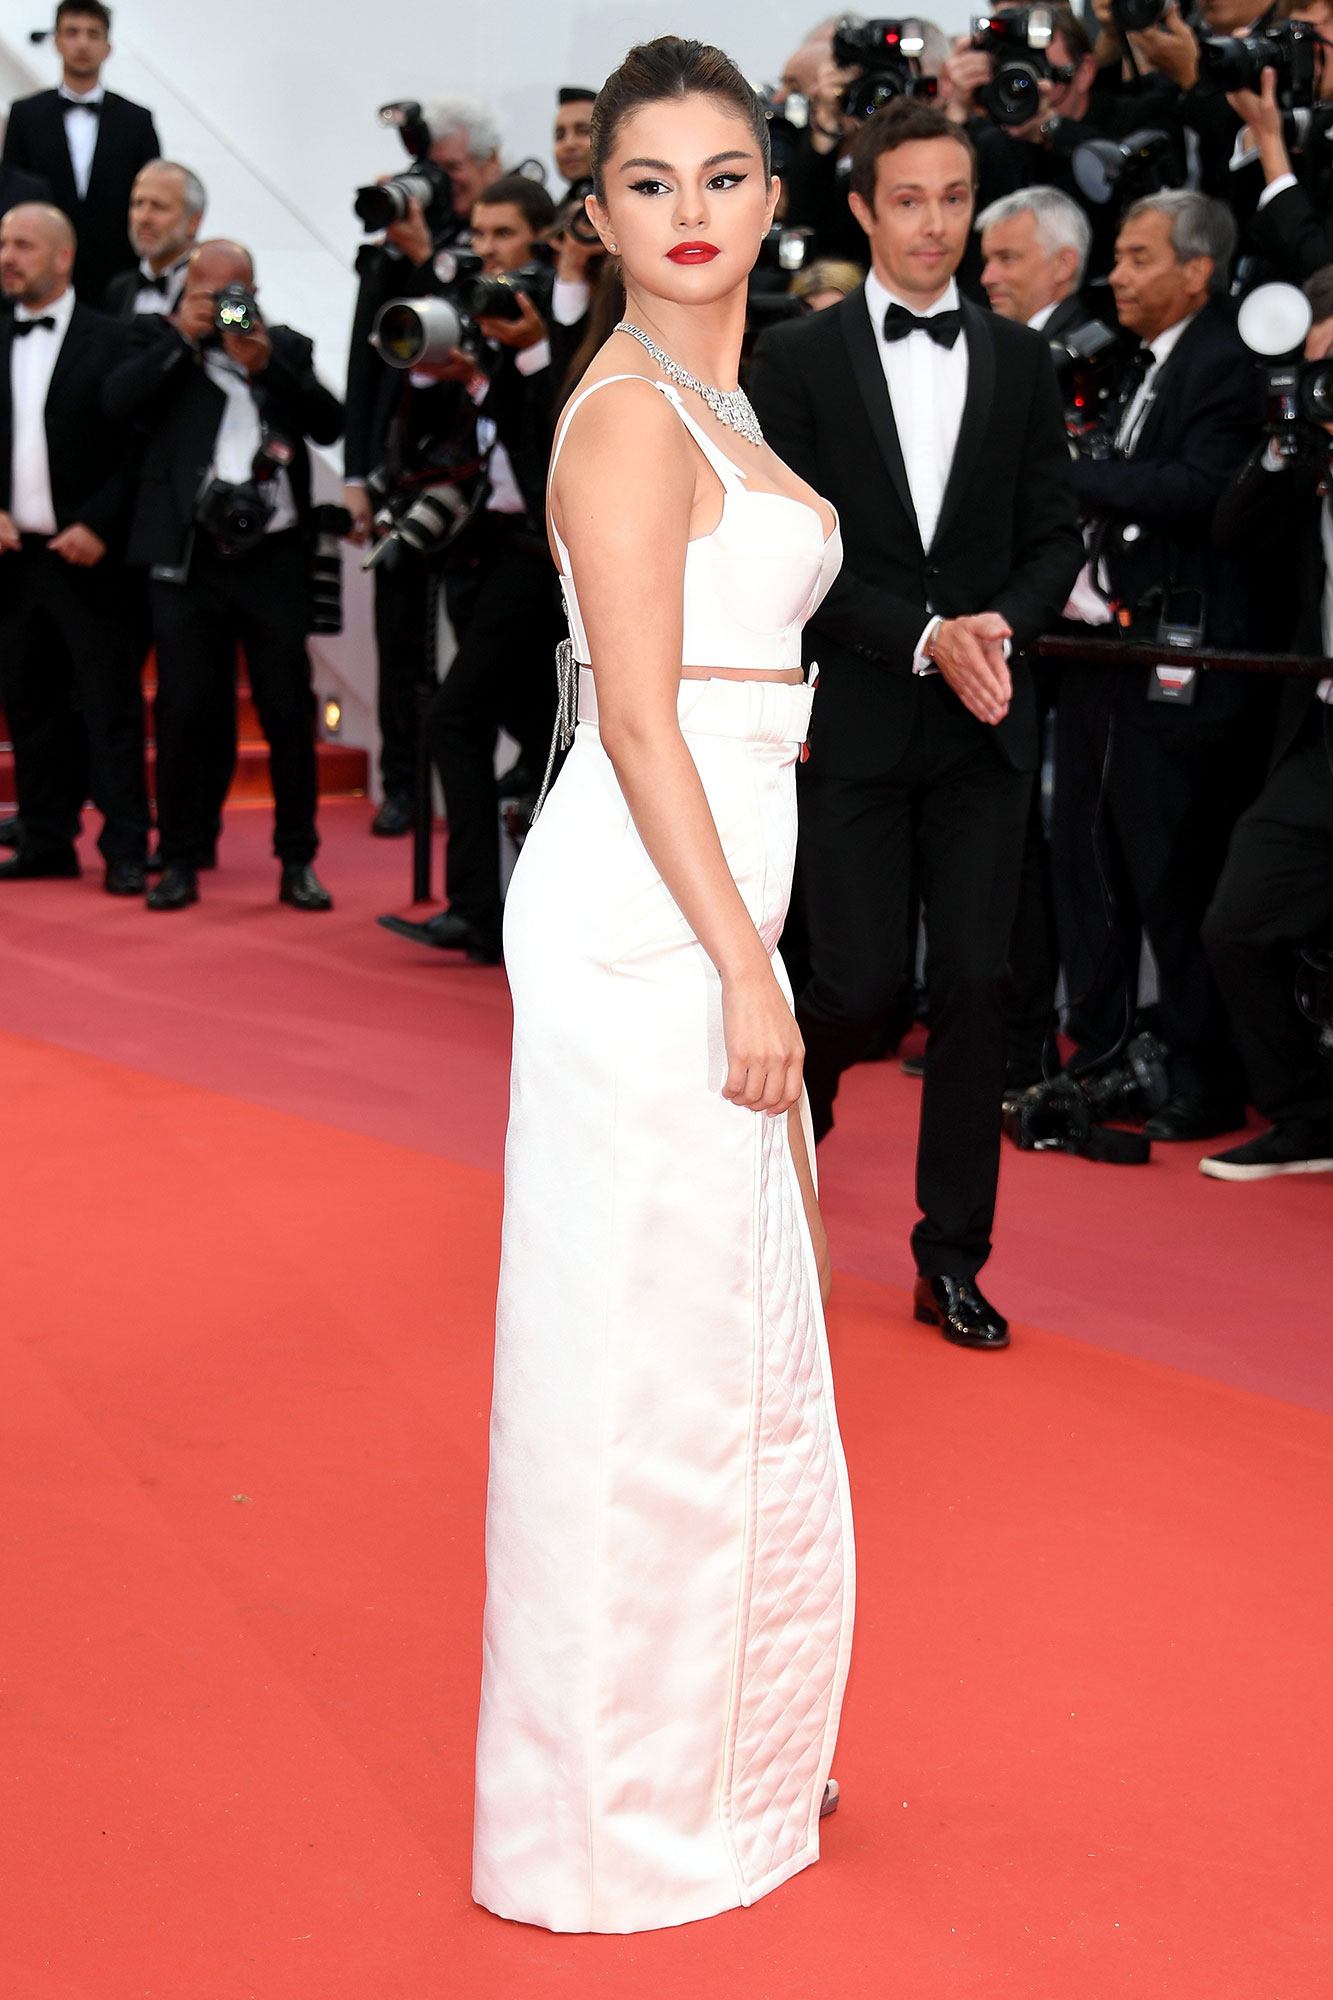 Selena Gomez Cannes - The movie star stunned in a white two-piece ensemble from Louis Vuitton.